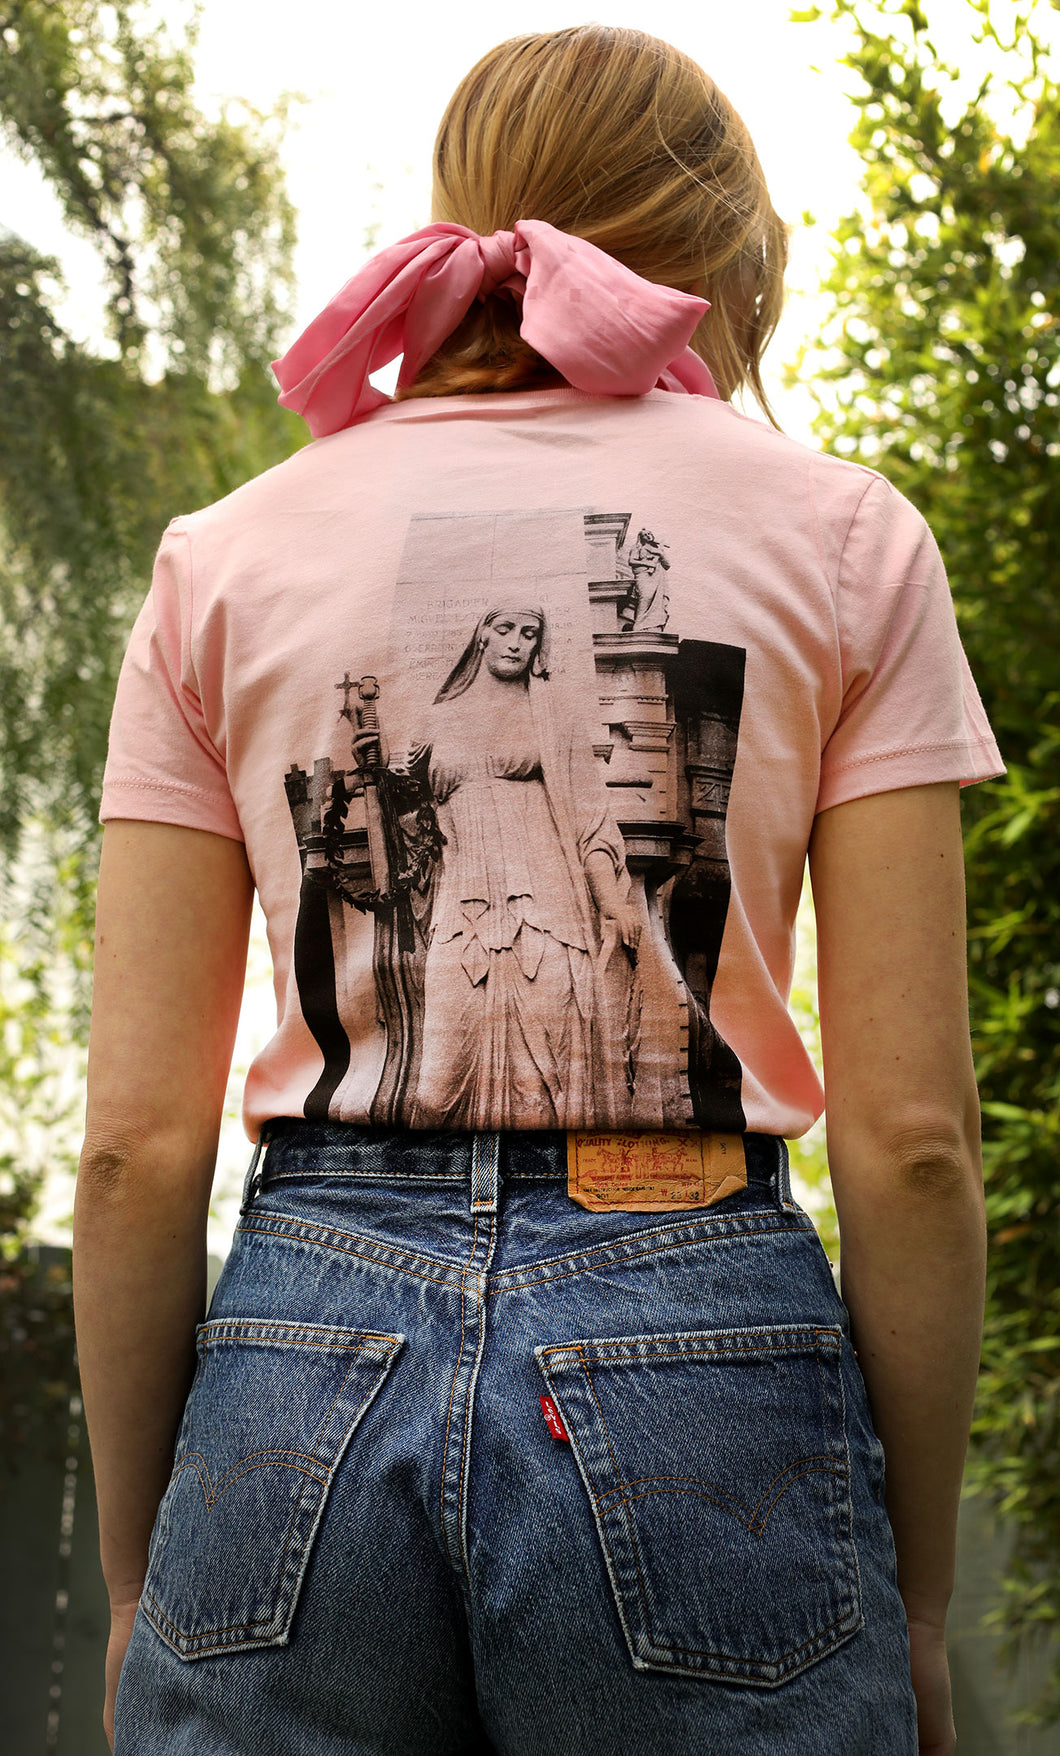 Women's T-shirt with Gothic Woman Statue Photo, Pink